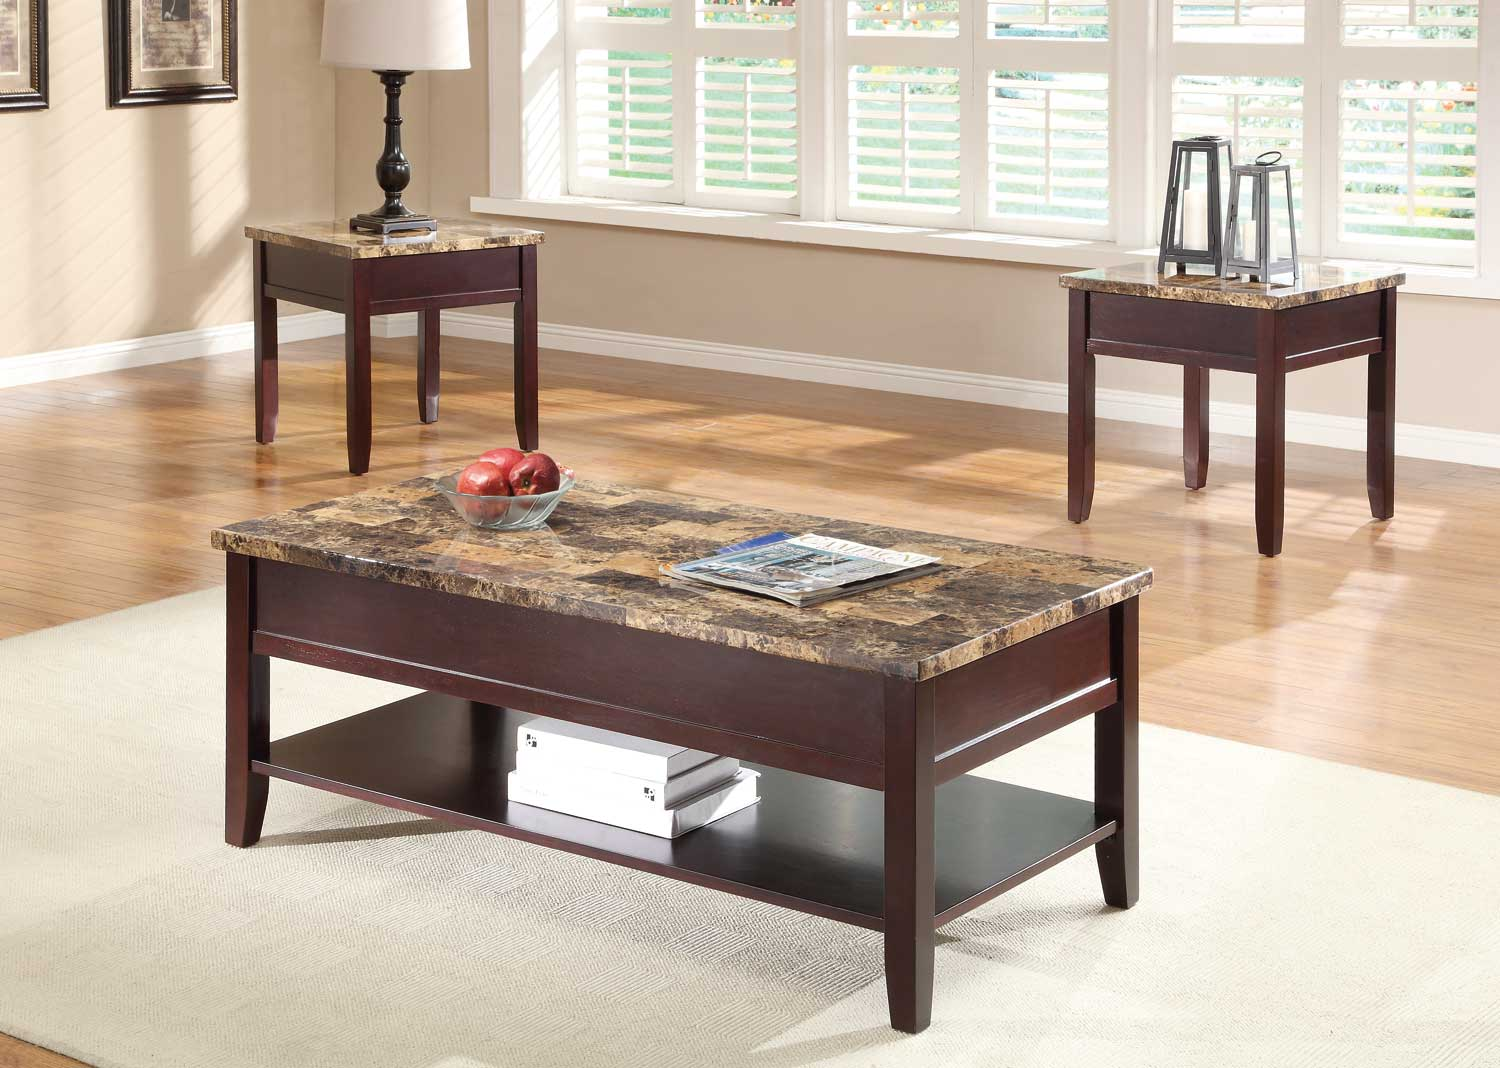 Homelegance Orton Lift Top Cocktail Table Set - Cherry